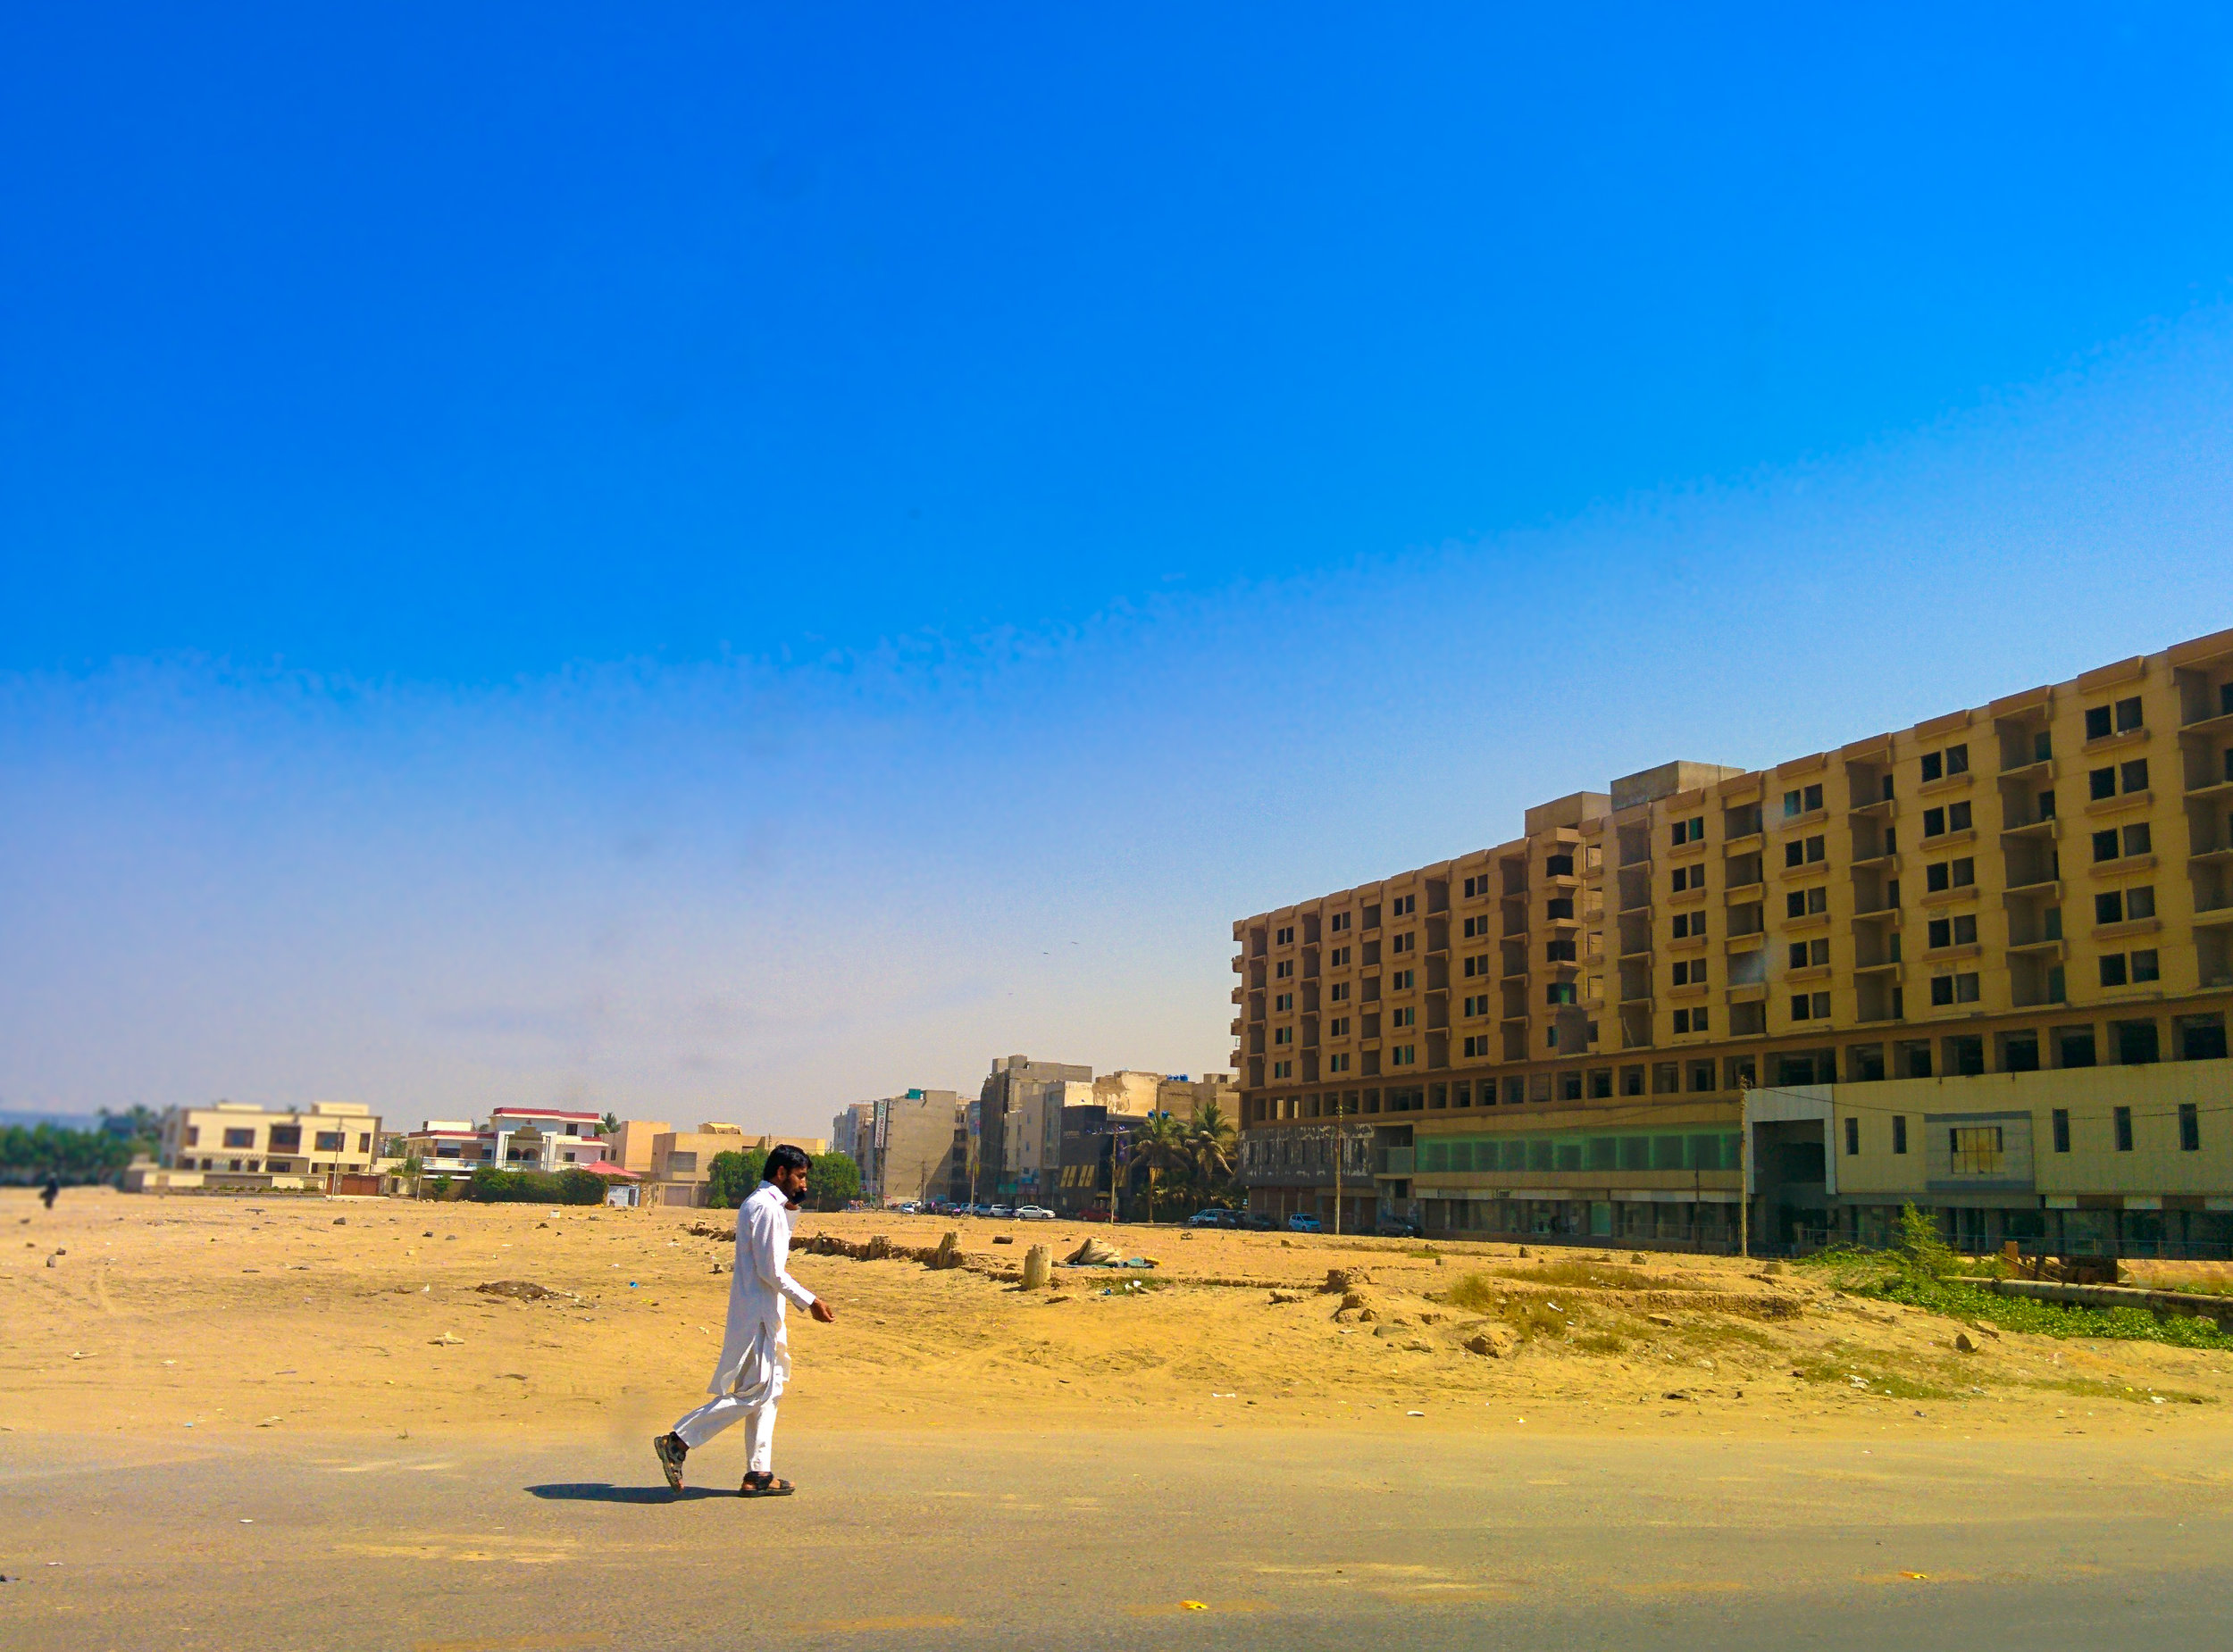 A local pedestrian crosses the road in the sweltering heat.